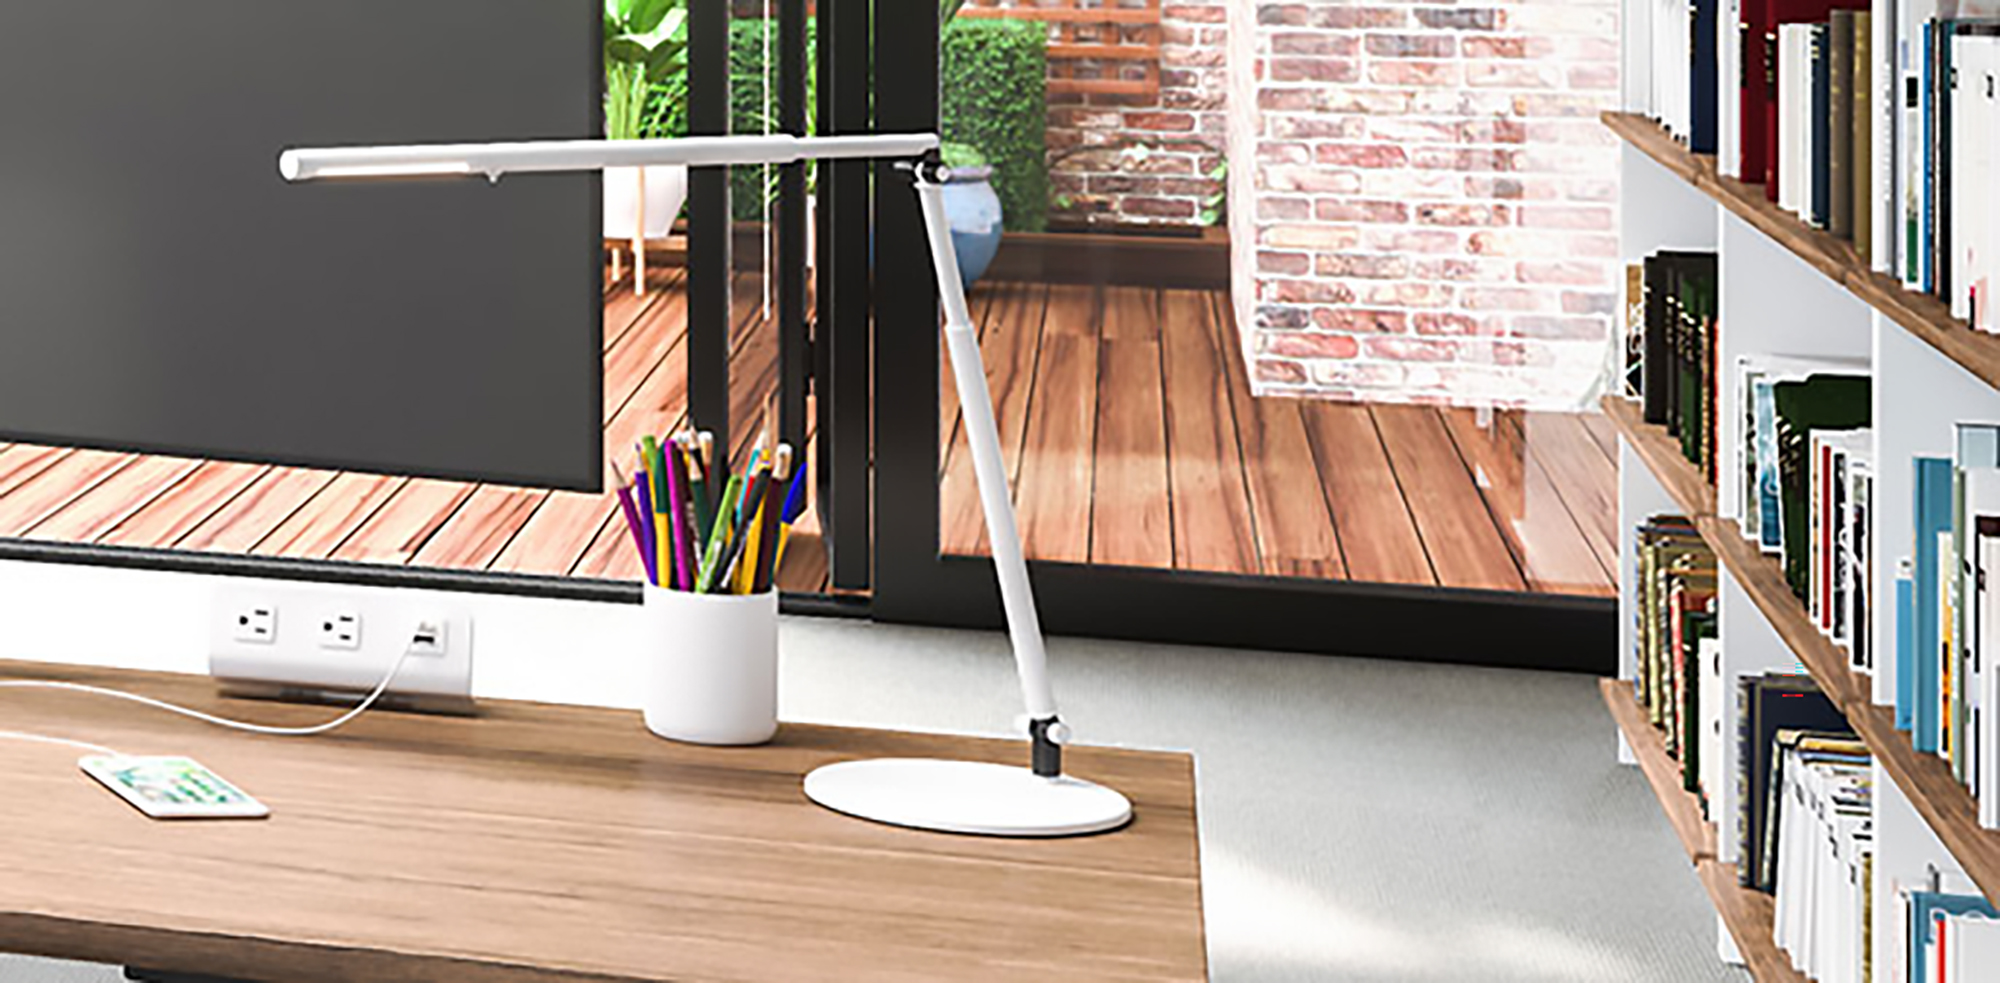 Proper lighting is an essential element of any #WFH environment and this Lustre LED light from ESI will illuminate your worksurface.  Don't forget the importance of a good, ergonomic chair. Many chairs can ship partially or fully assembled direct to your door. Left one behind at the office? We can pick it up and deliver it to you.